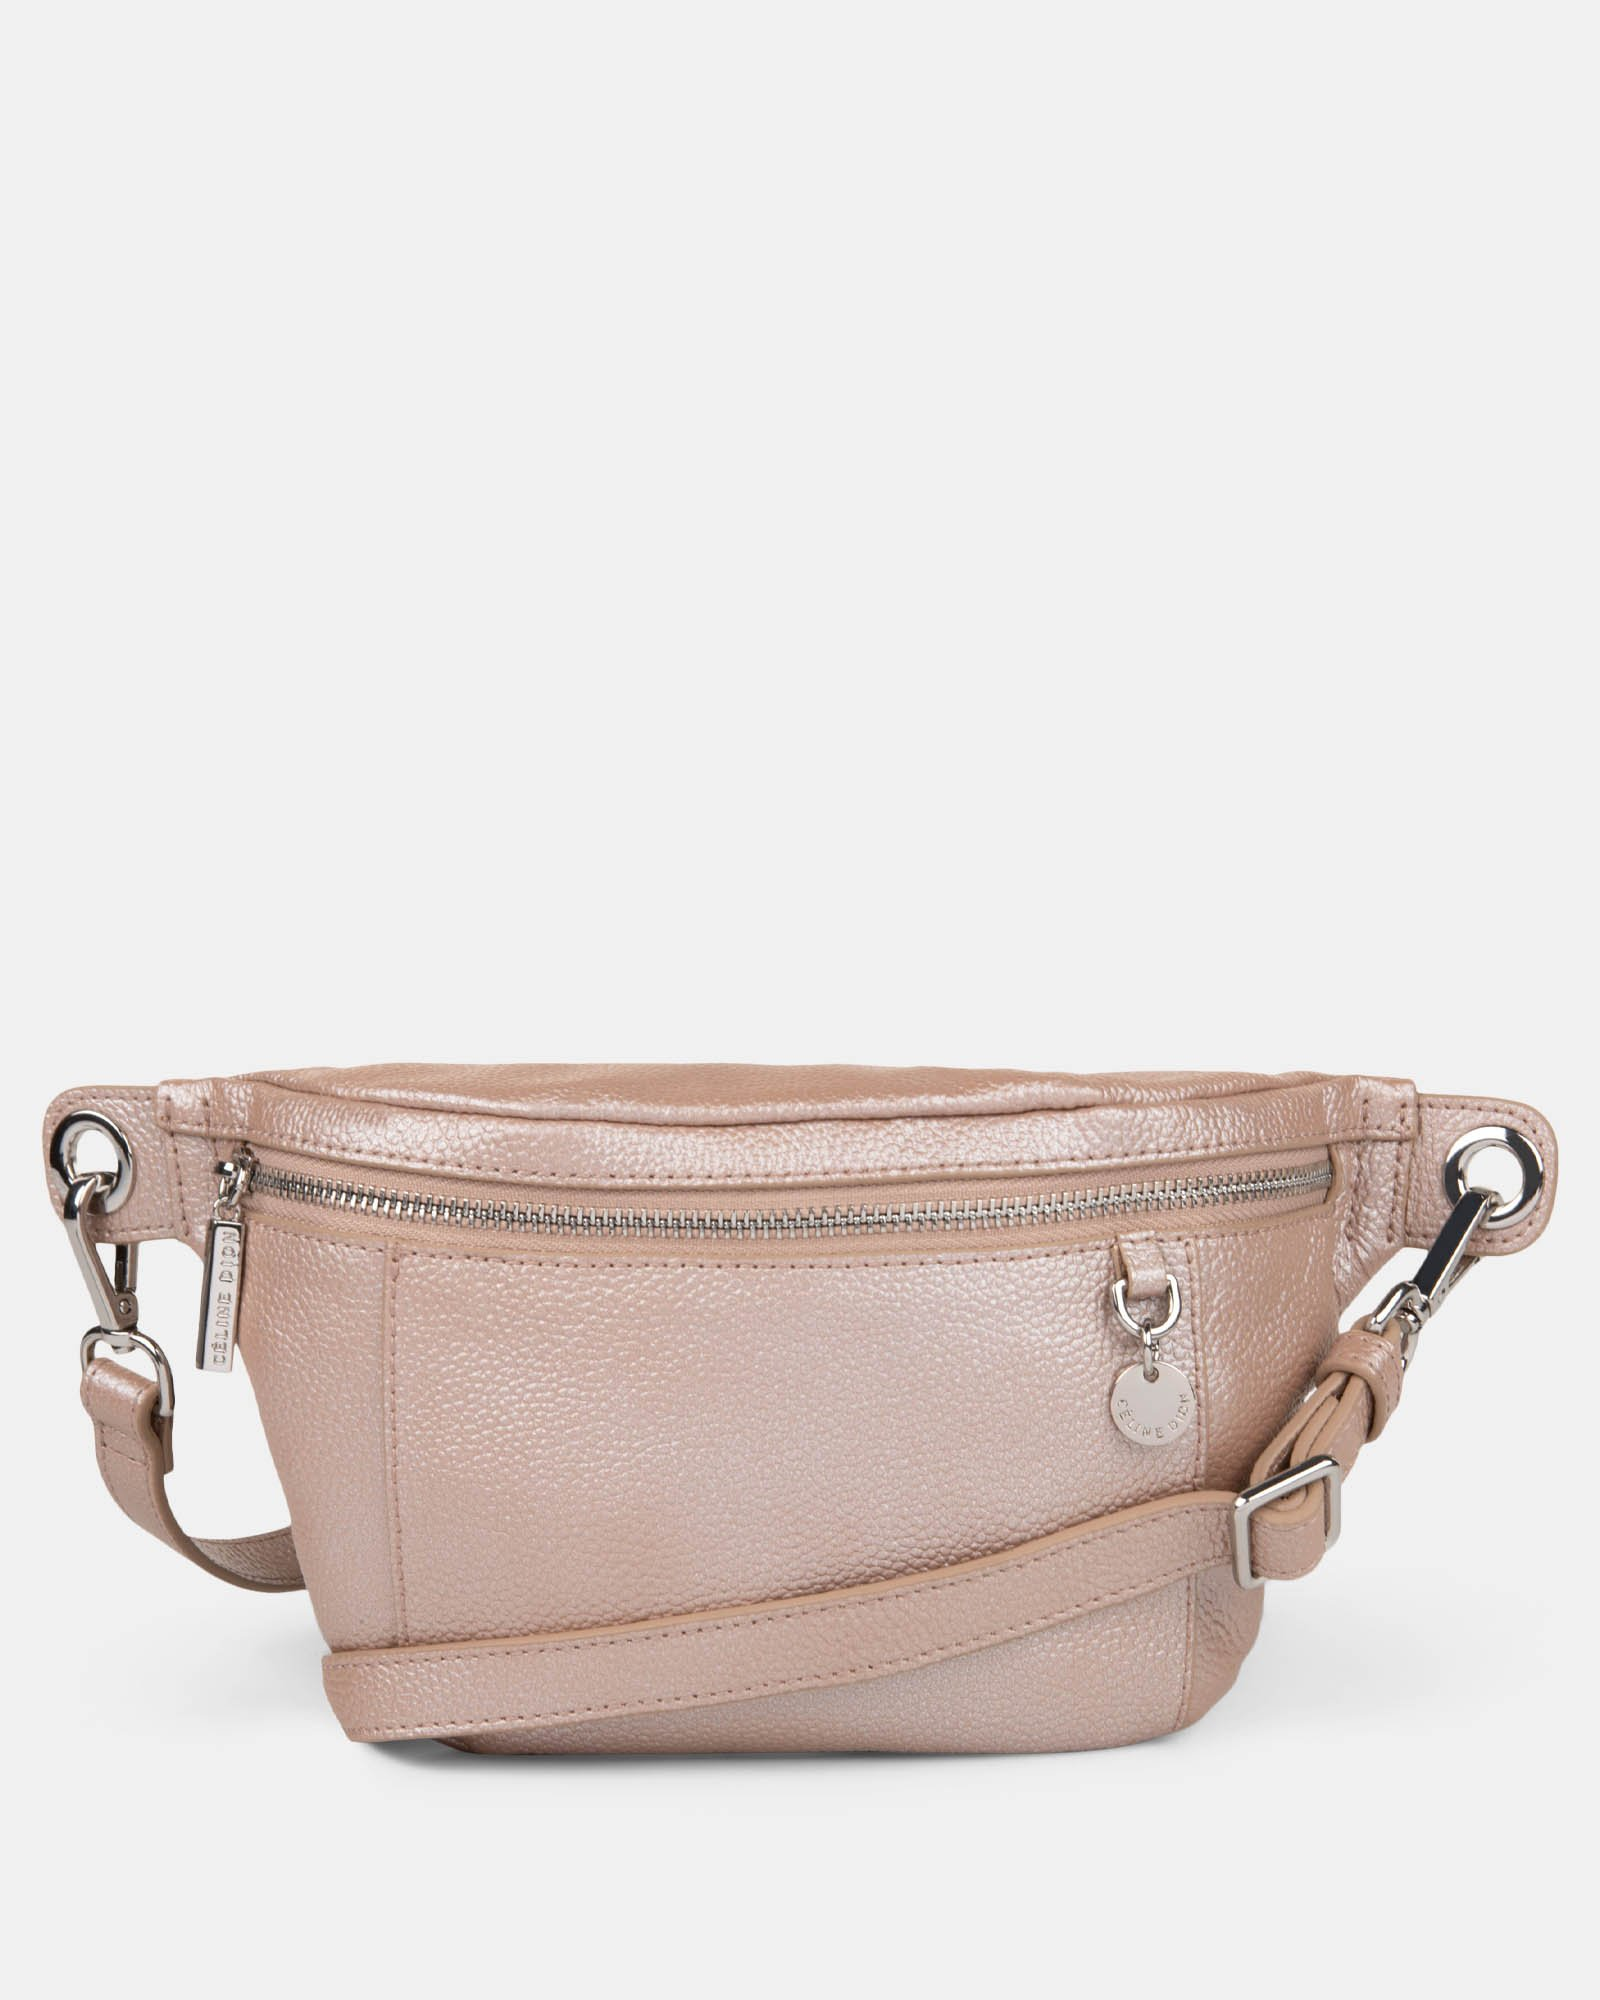 FALSETTO - LEATHER MONEY BELT with RFID protection - Rosegold - Céline Dion - Zoom